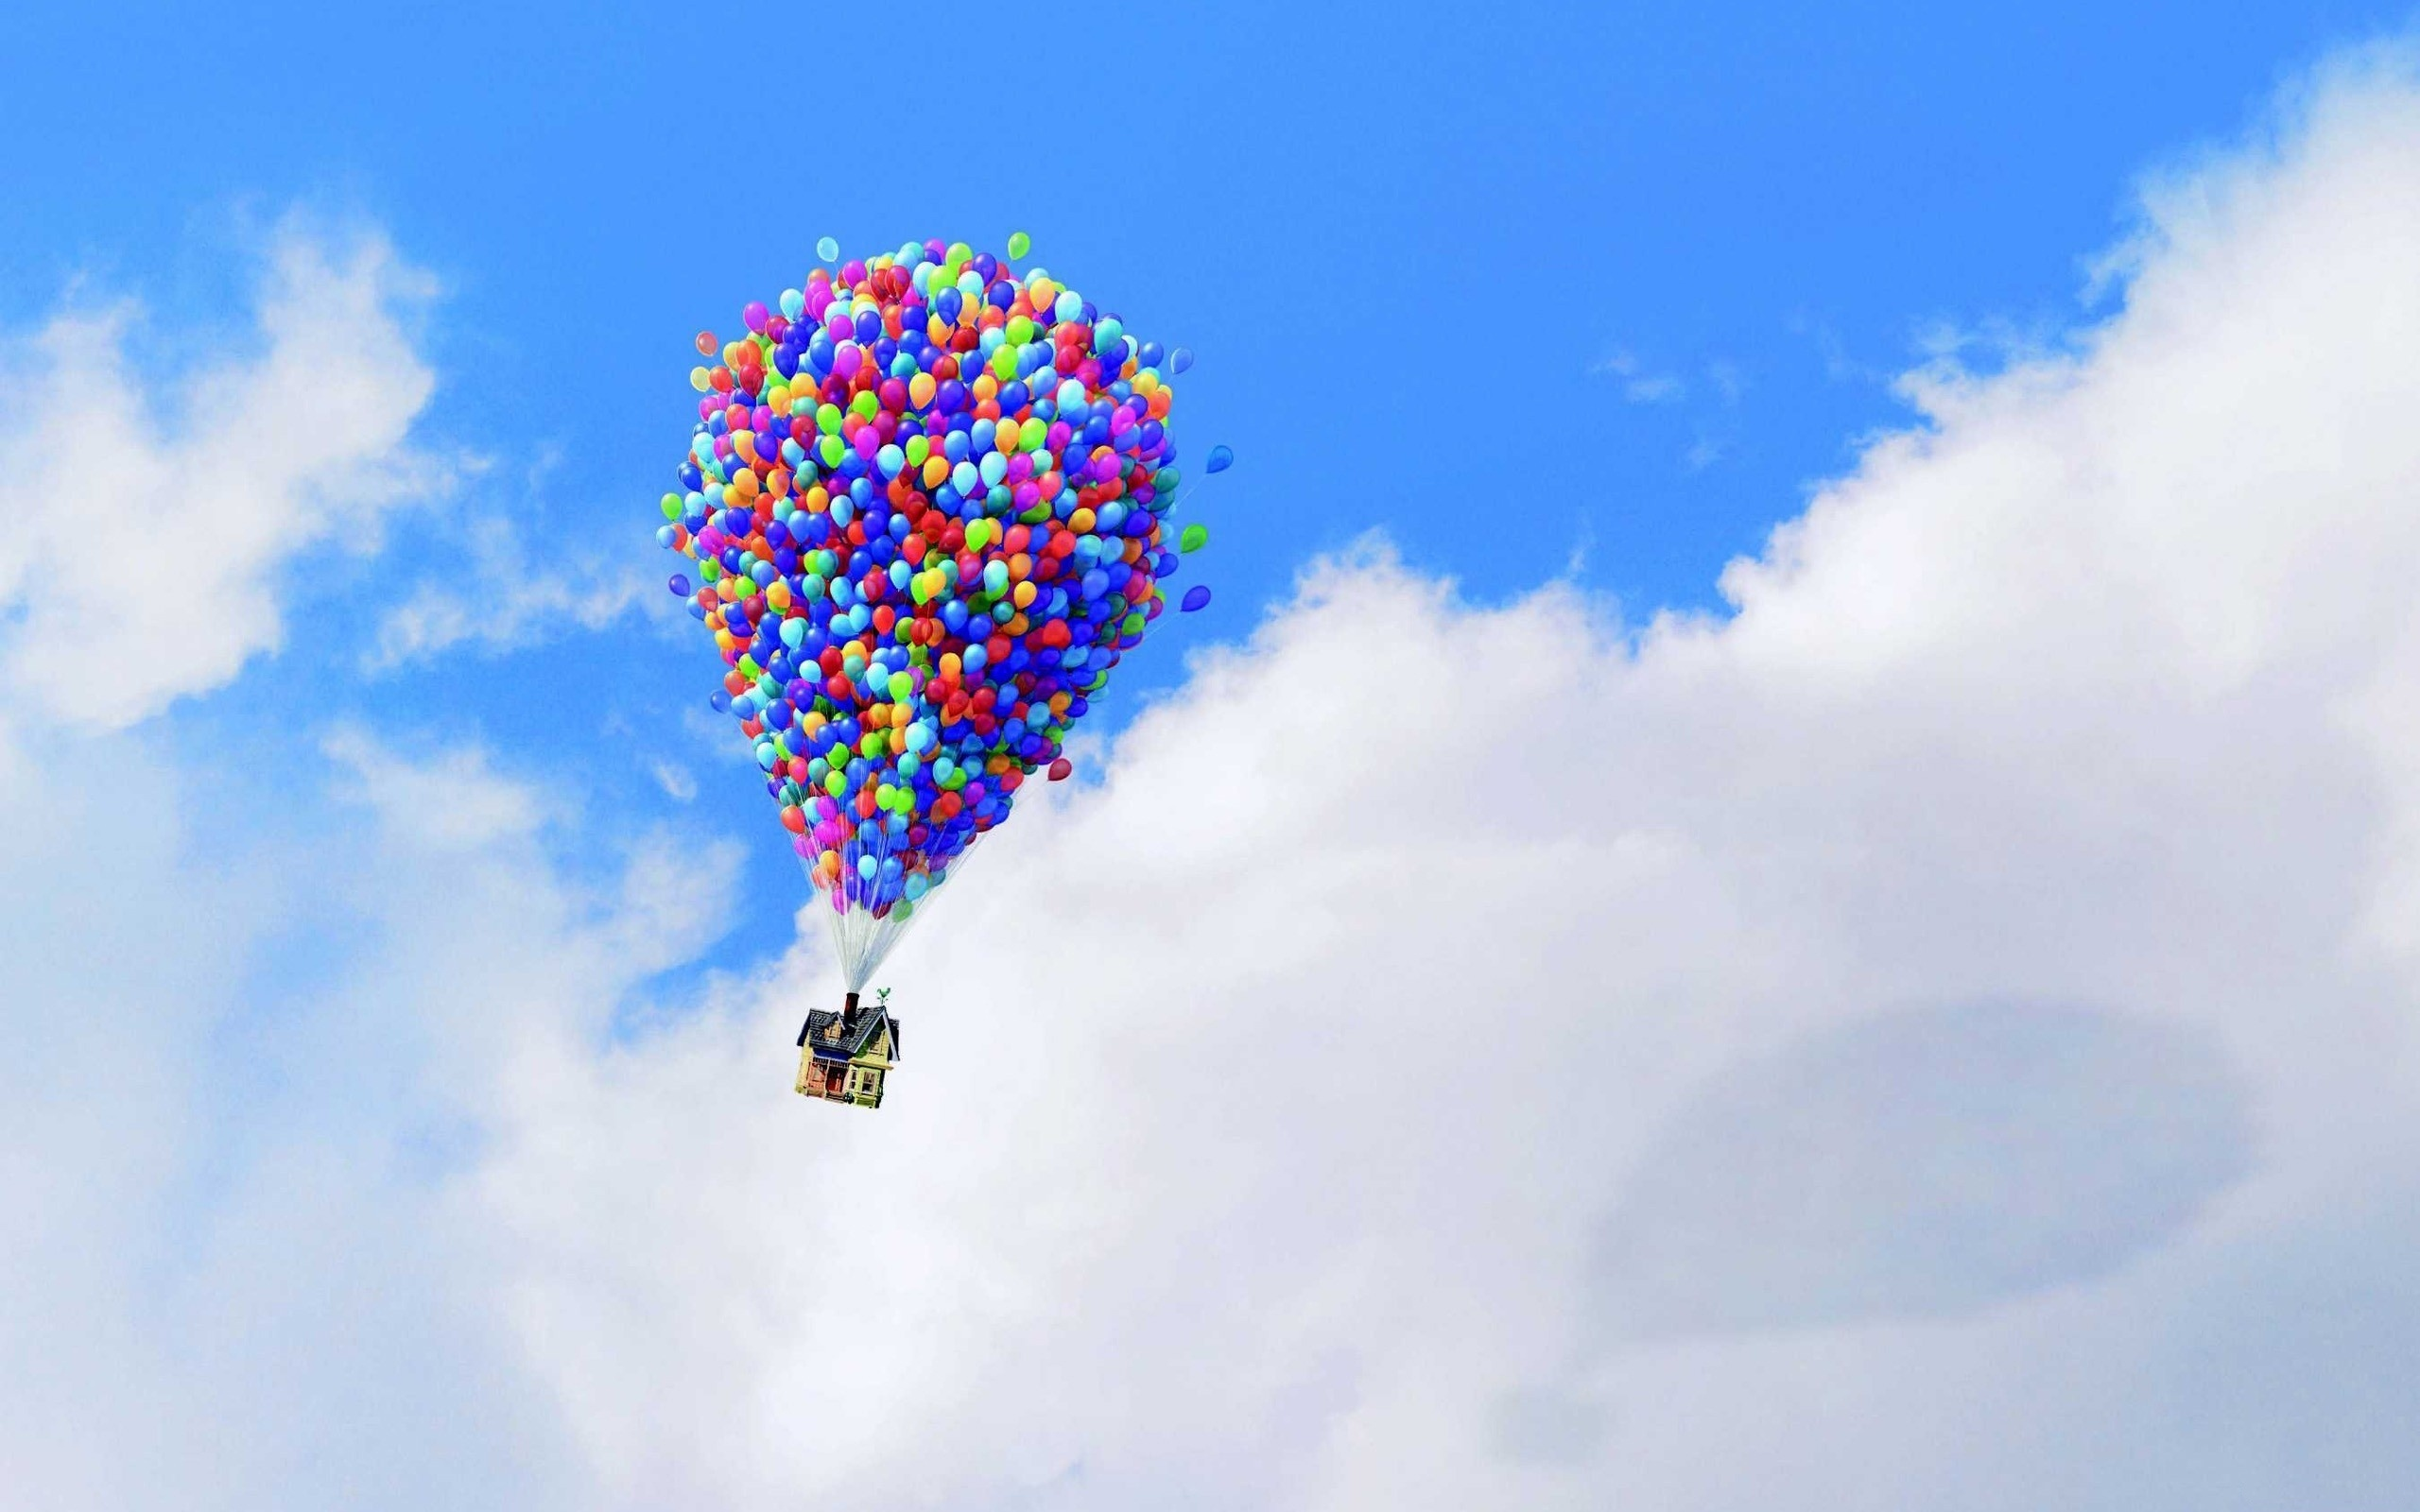 up wallpaper up pixar pixar animation balloons house sky